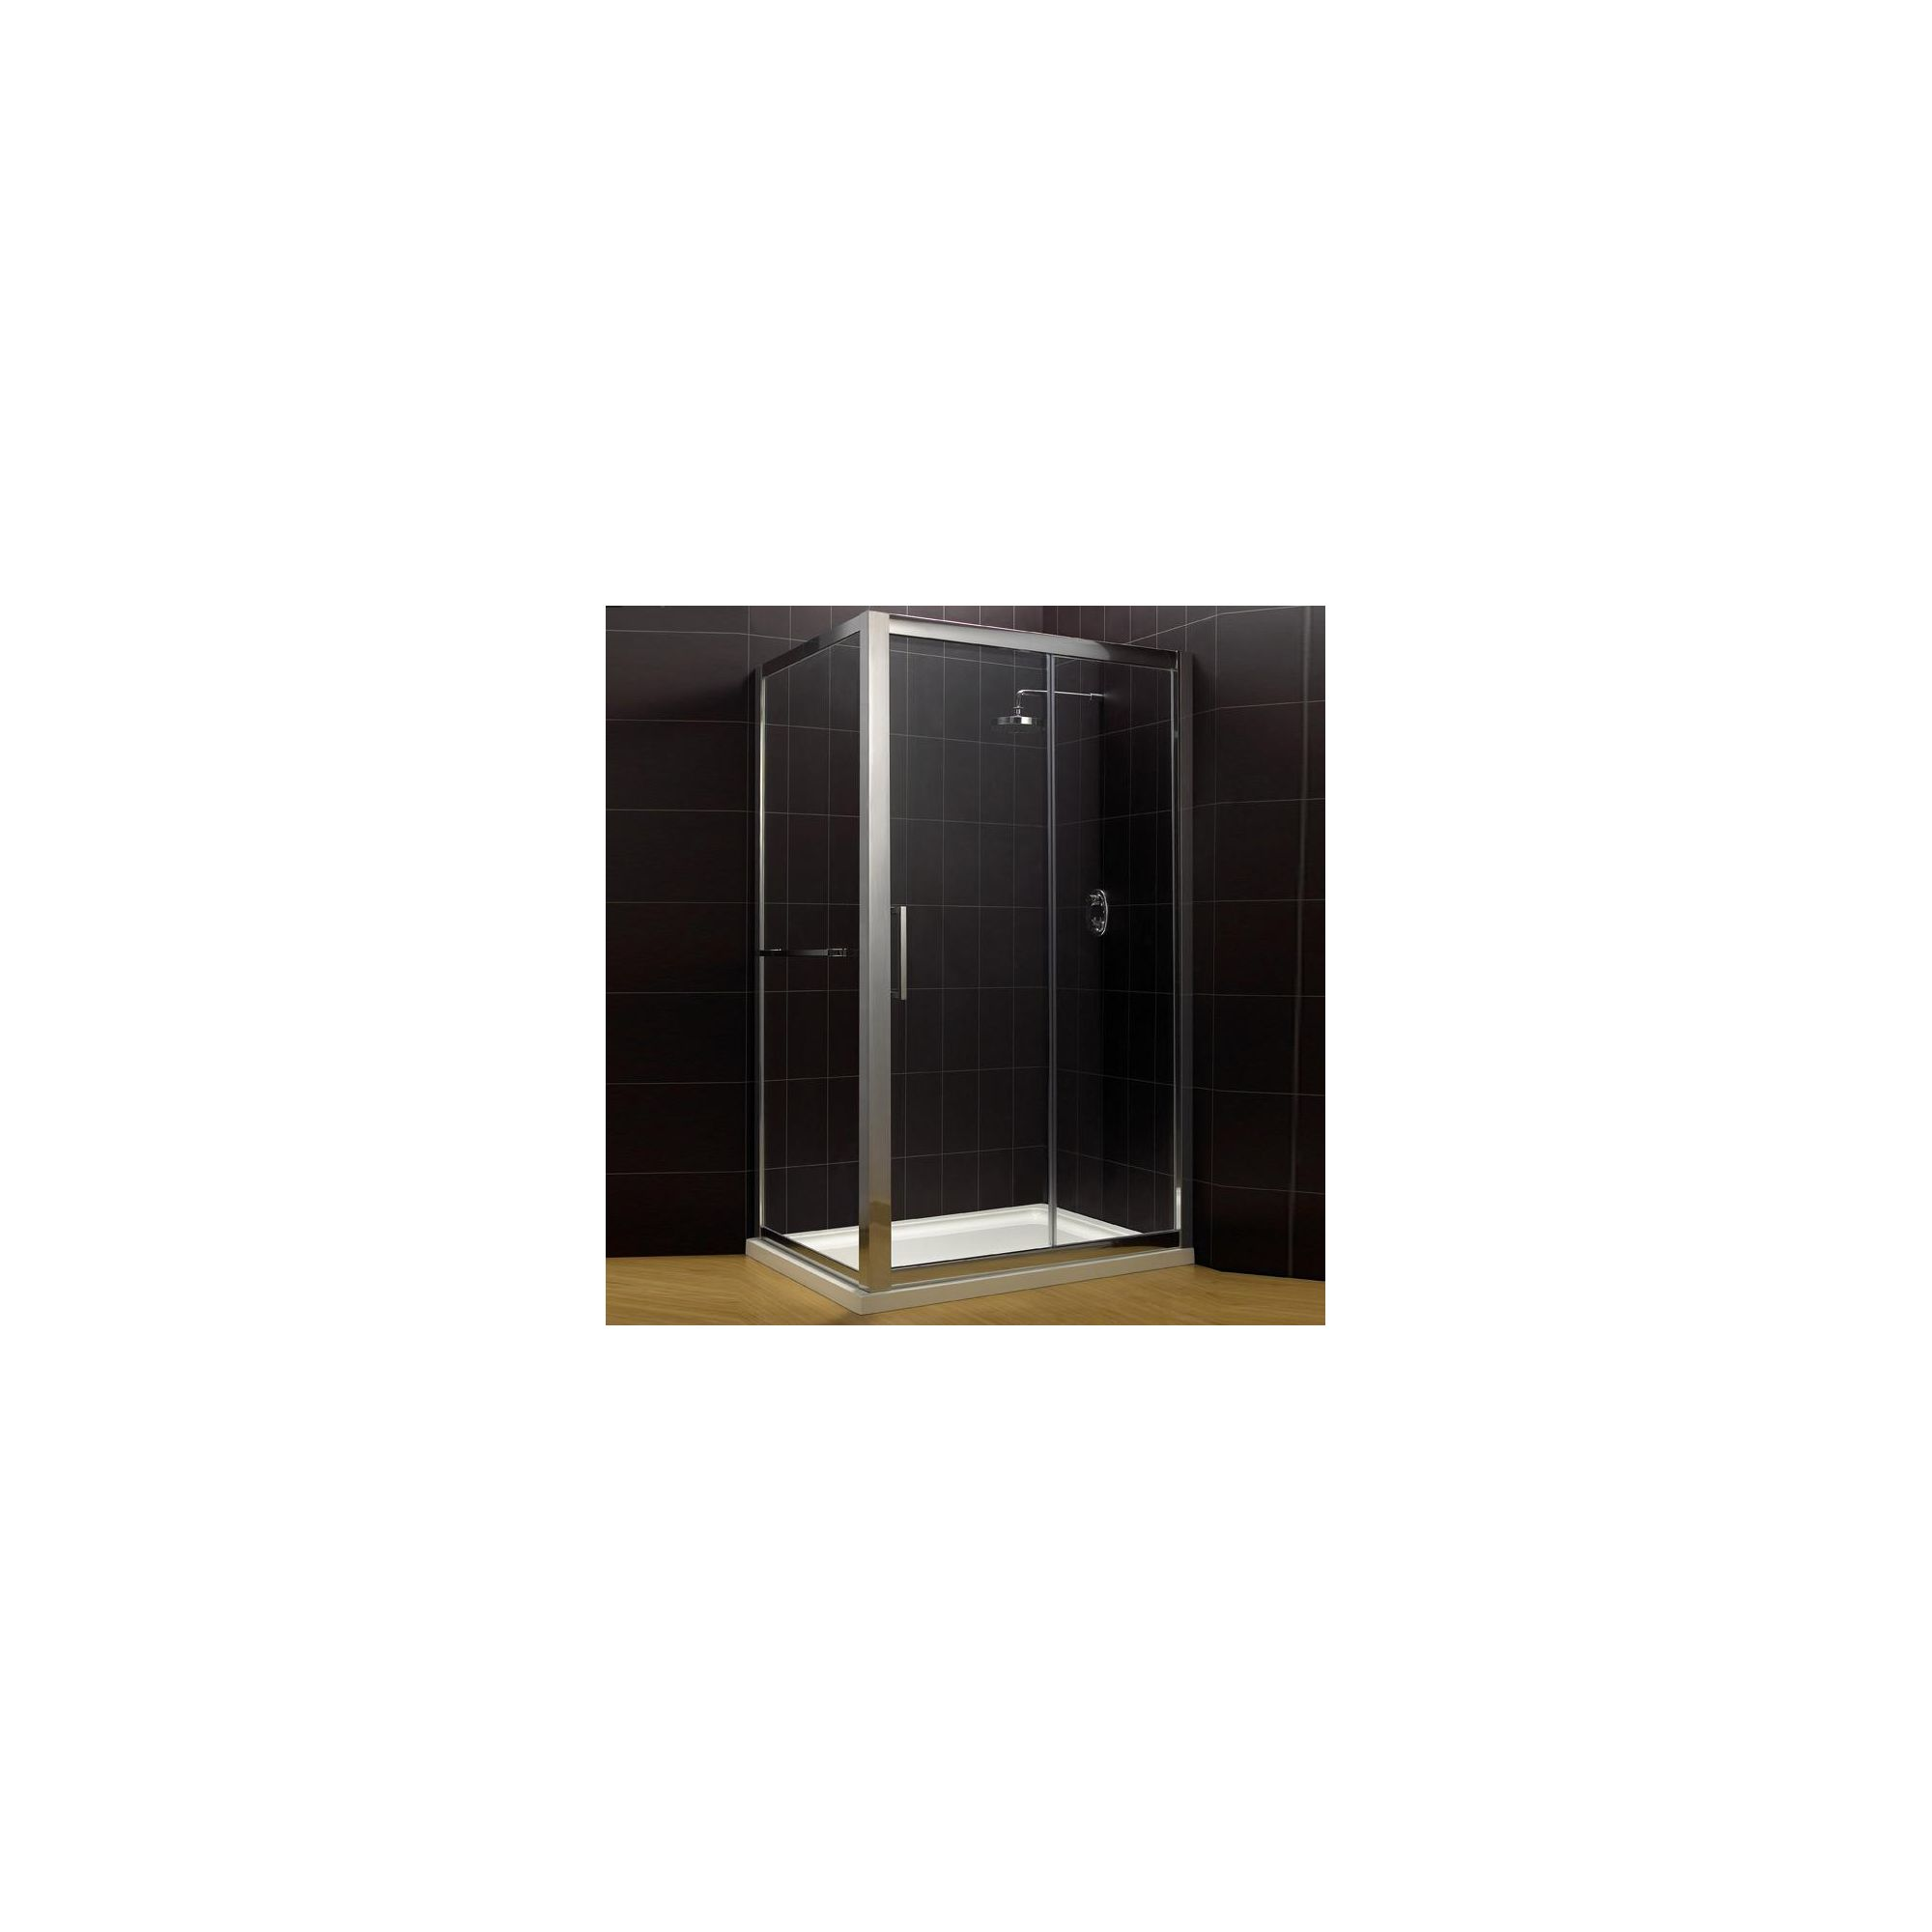 Duchy Supreme Silver Sliding Door Shower Enclosure with Towel Rail, 1700mm x 800mm, Standard Tray, 8mm Glass at Tescos Direct